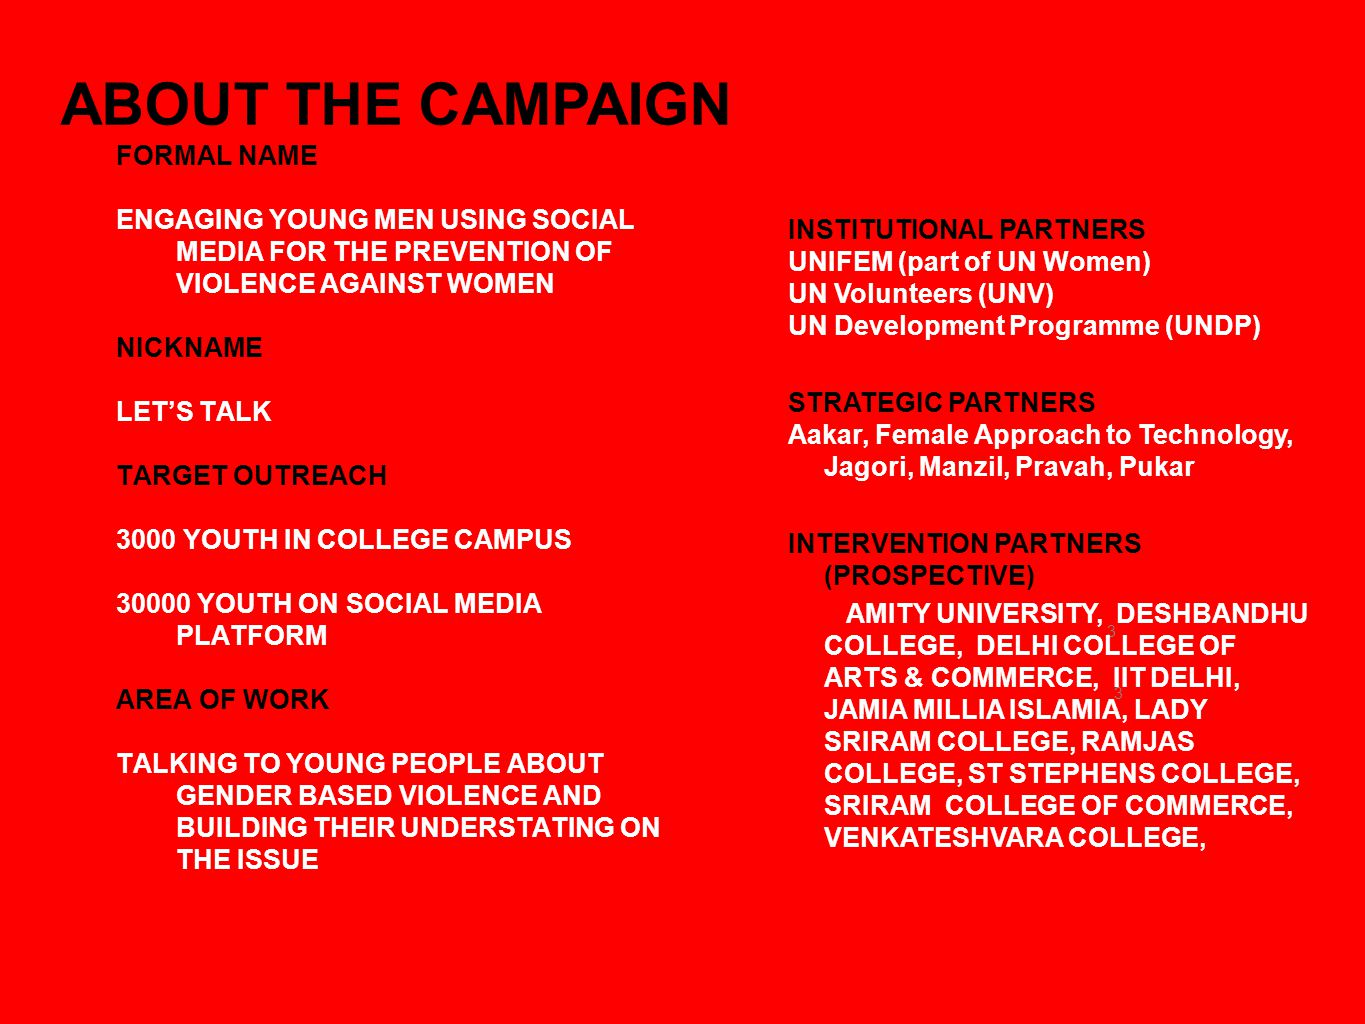 3 ABOUT THE CAMPAIGN FORMAL NAME ENGAGING YOUNG MEN USING SOCIAL MEDIA FOR THE PREVENTION OF VIOLENCE AGAINST WOMEN NICKNAME LETS TALK TARGET OUTREACH 3000 YOUTH IN COLLEGE CAMPUS 30000 YOUTH ON SOCIAL MEDIA PLATFORM AREA OF WORK TALKING TO YOUNG PEOPLE ABOUT GENDER BASED VIOLENCE AND BUILDING THEIR UNDERSTATING ON THE ISSUE INSTITUTIONAL PARTNERS UNIFEM (part of UN Women) UN Volunteers (UNV) UN Development Programme (UNDP) STRATEGIC PARTNERS Aakar, Female Approach to Technology, Jagori, Manzil, Pravah, Pukar INTERVENTION PARTNERS (PROSPECTIVE) AMITY UNIVERSITY, DESHBANDHU COLLEGE, DELHI COLLEGE OF ARTS & COMMERCE, IIT DELHI, JAMIA MILLIA ISLAMIA, LADY SRIRAM COLLEGE, RAMJAS COLLEGE, ST STEPHENS COLLEGE, SRIRAM COLLEGE OF COMMERCE, VENKATESHVARA COLLEGE, 3